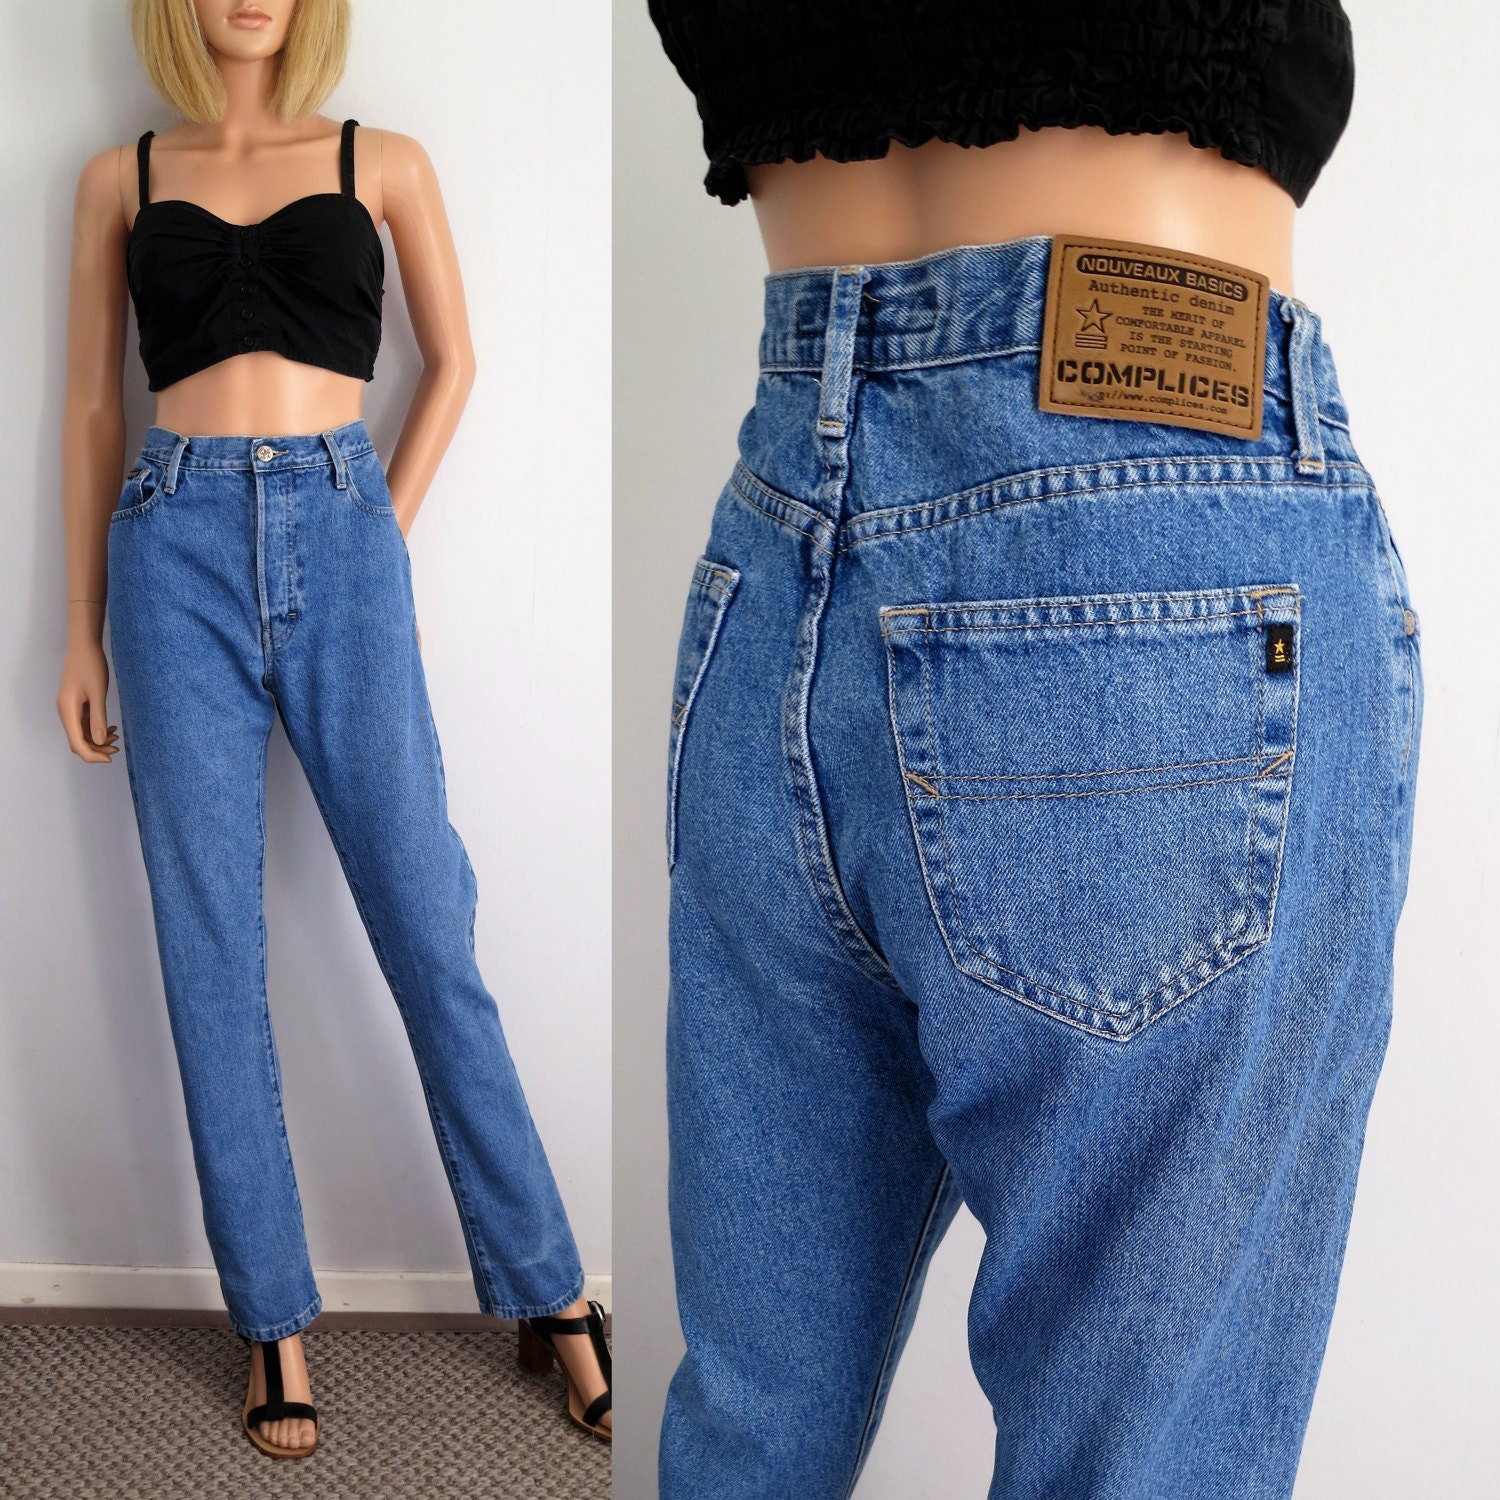 hohe taille jeans hose mama blau stonewashed jeans 90er. Black Bedroom Furniture Sets. Home Design Ideas